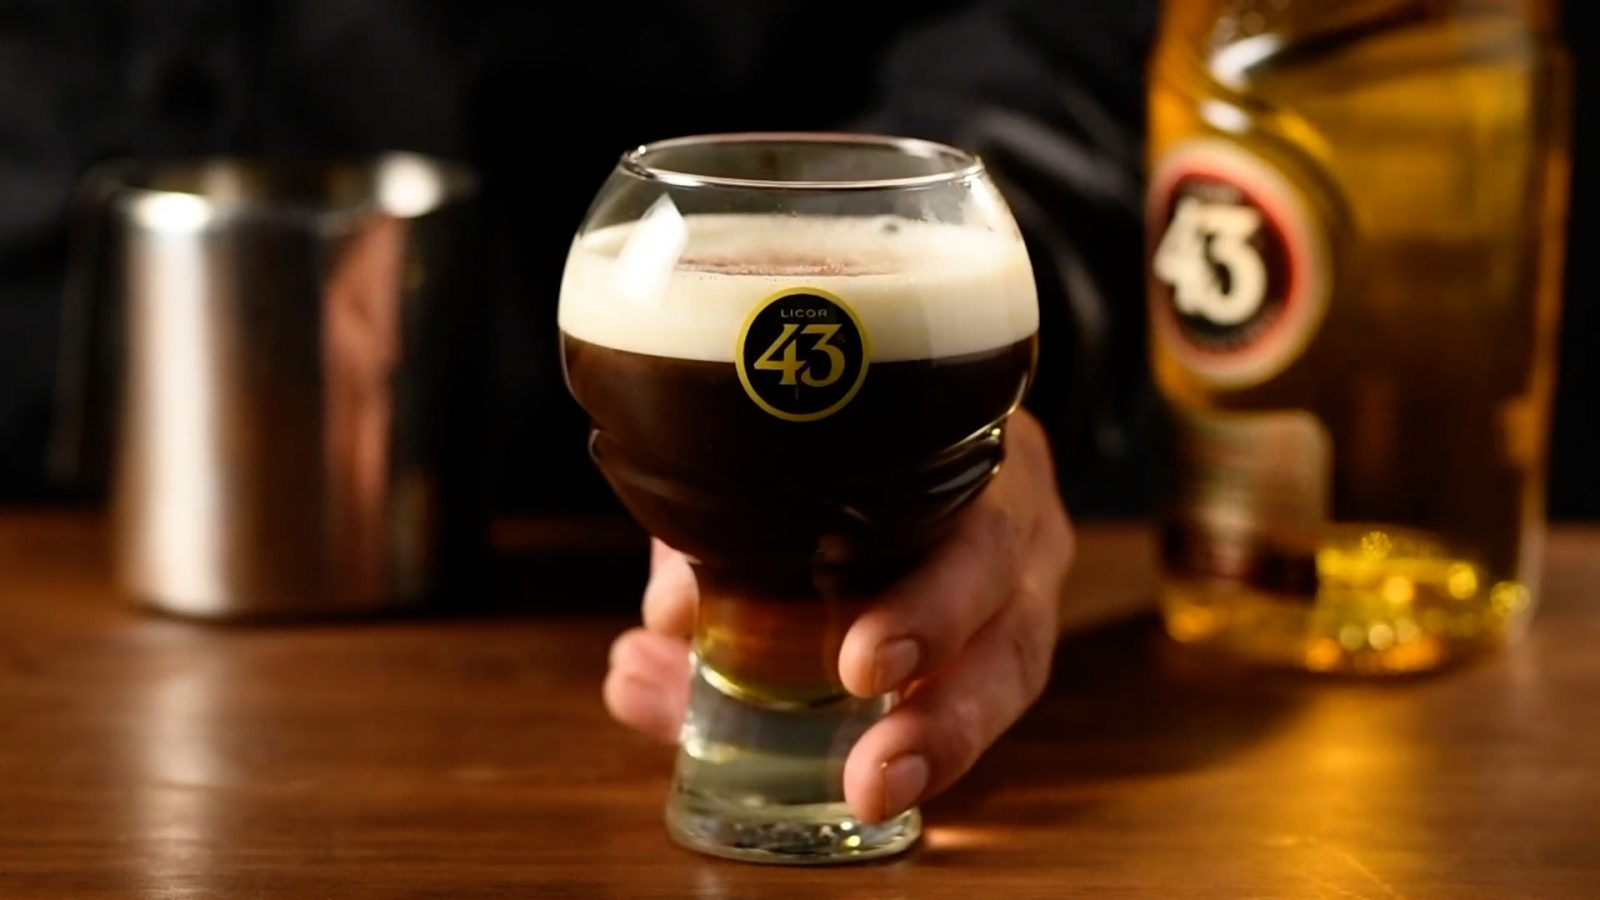 Spanish Coffee 43